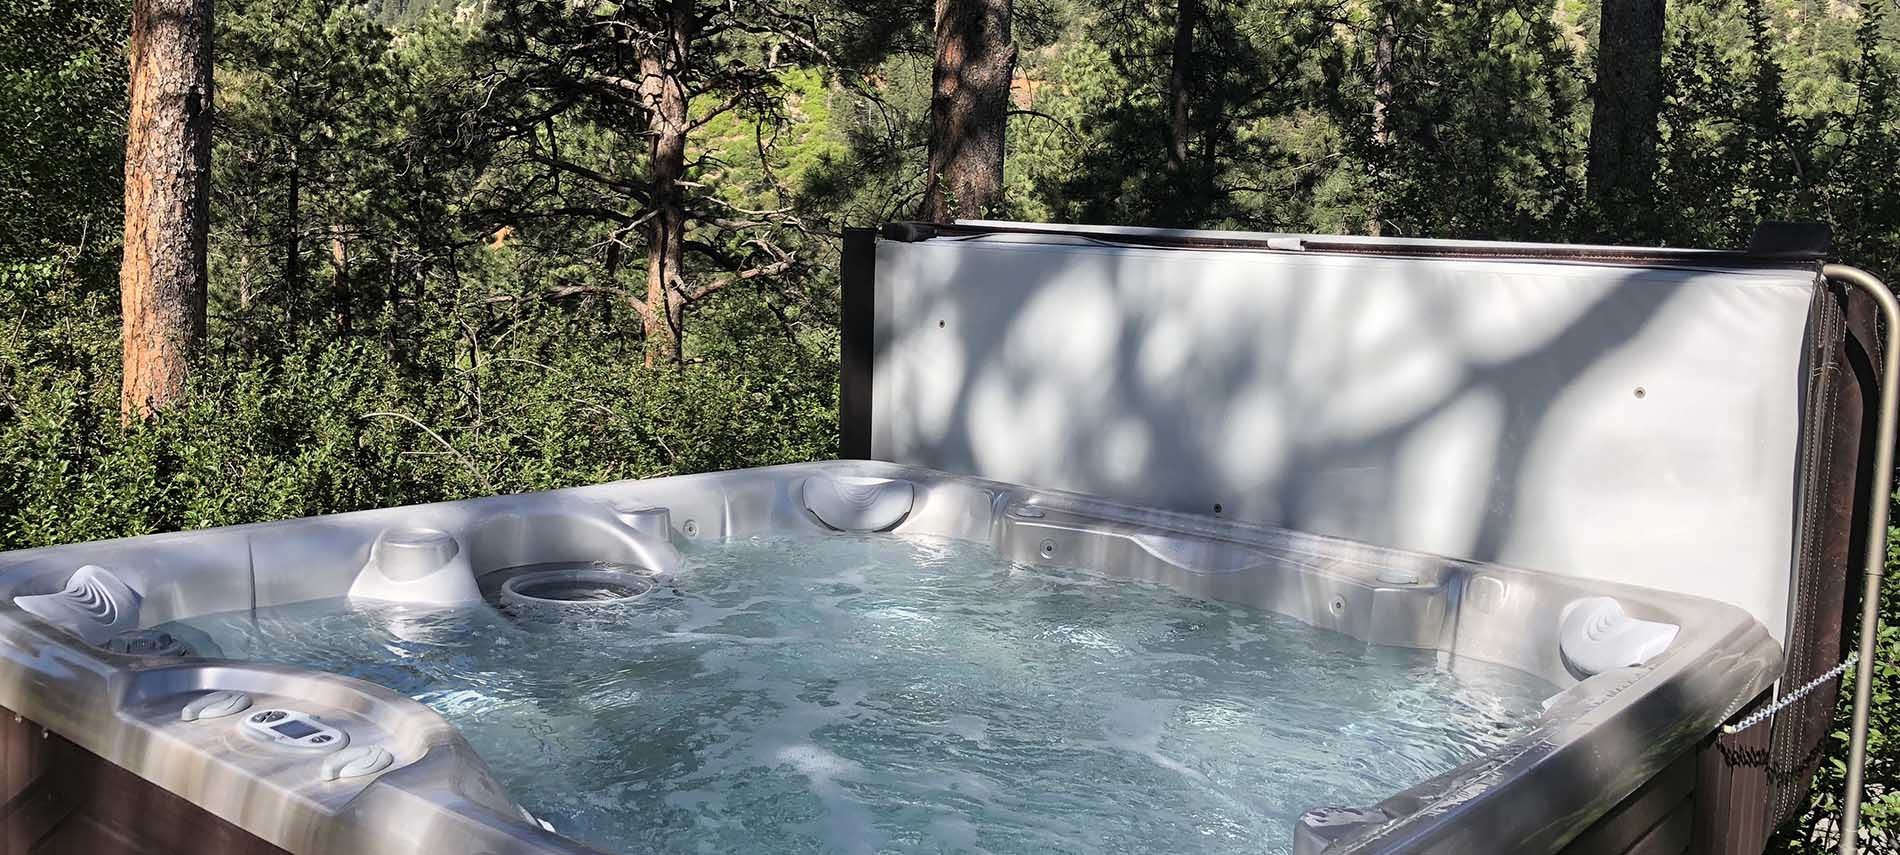 Hot tub in private space setting in the tree line overlooking the forrest